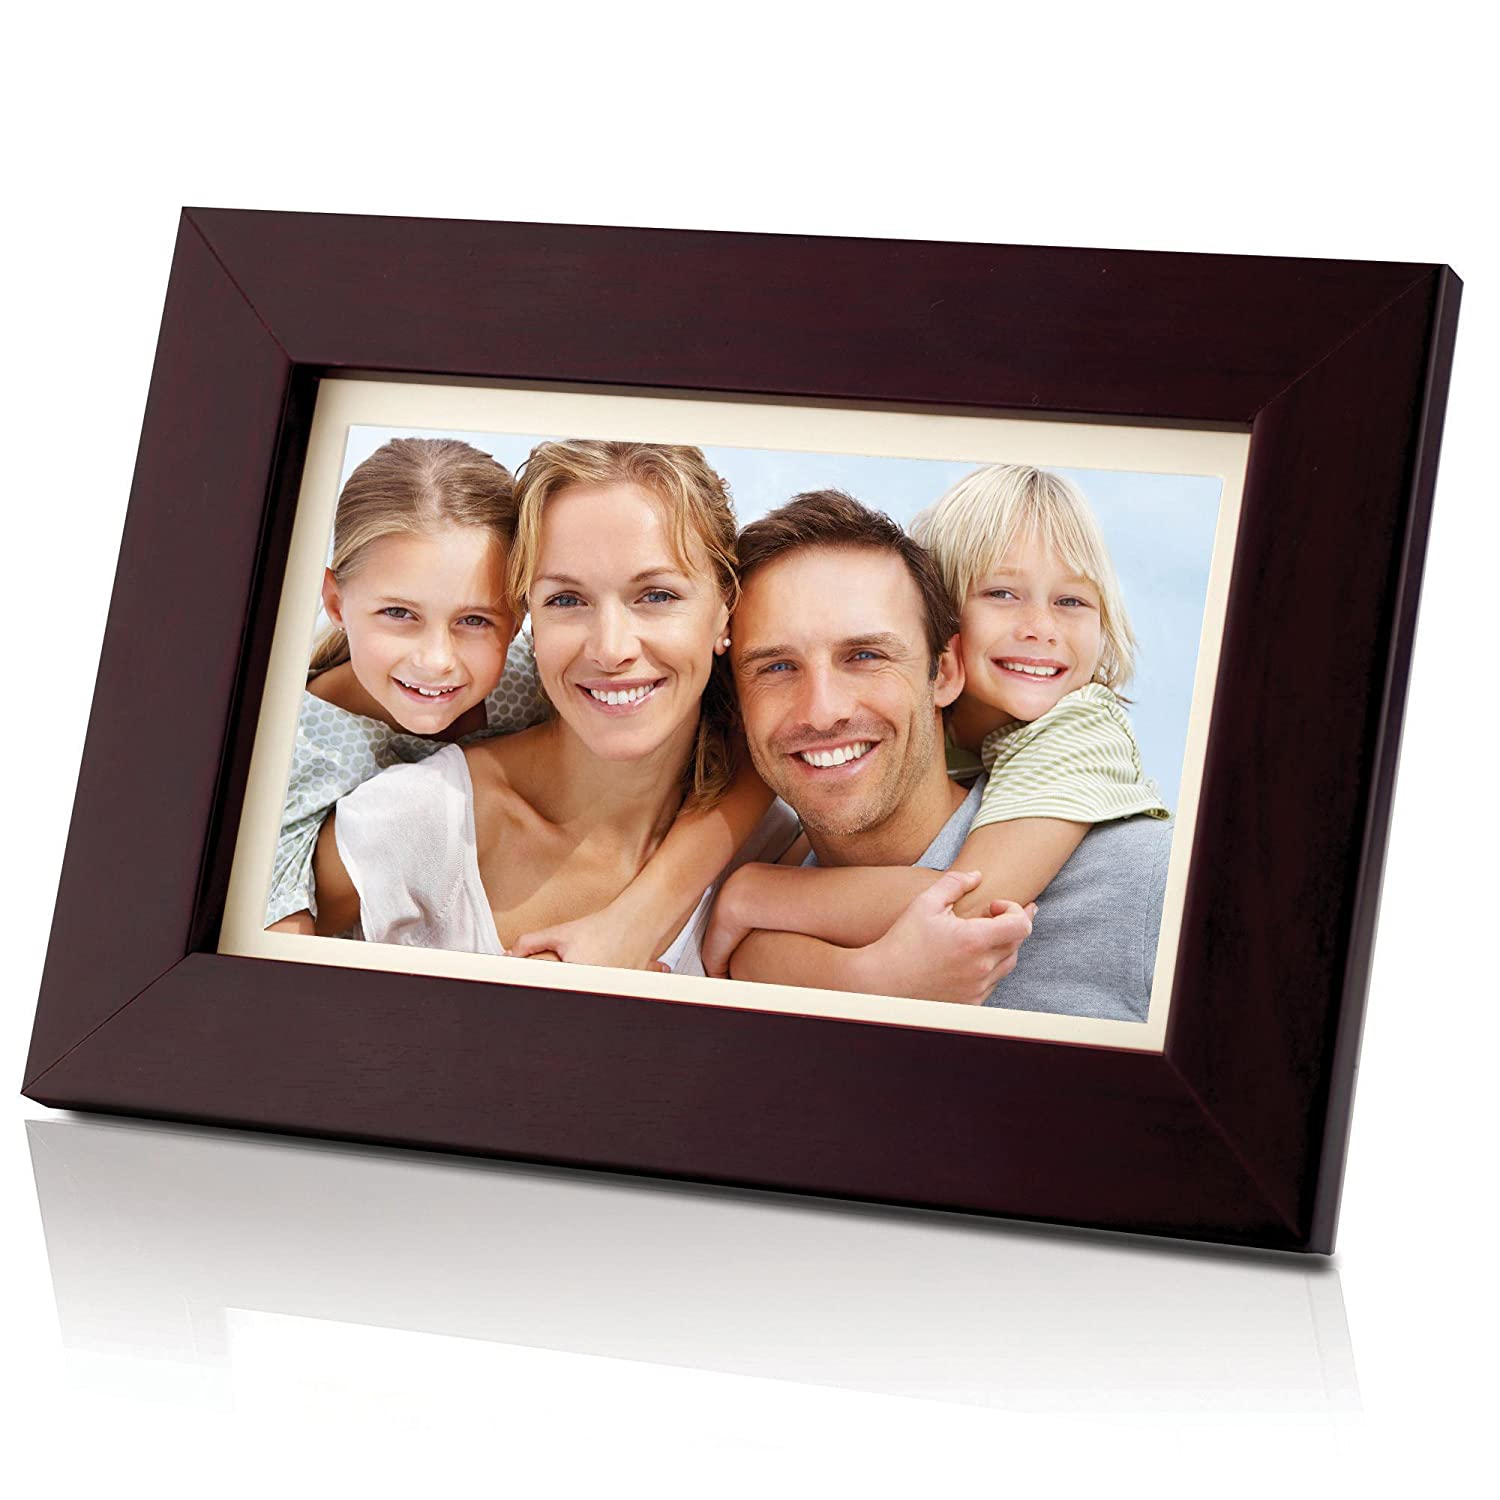 Amazoncom Coby Dp700blk 7 Inch Digital Picture Frame Black